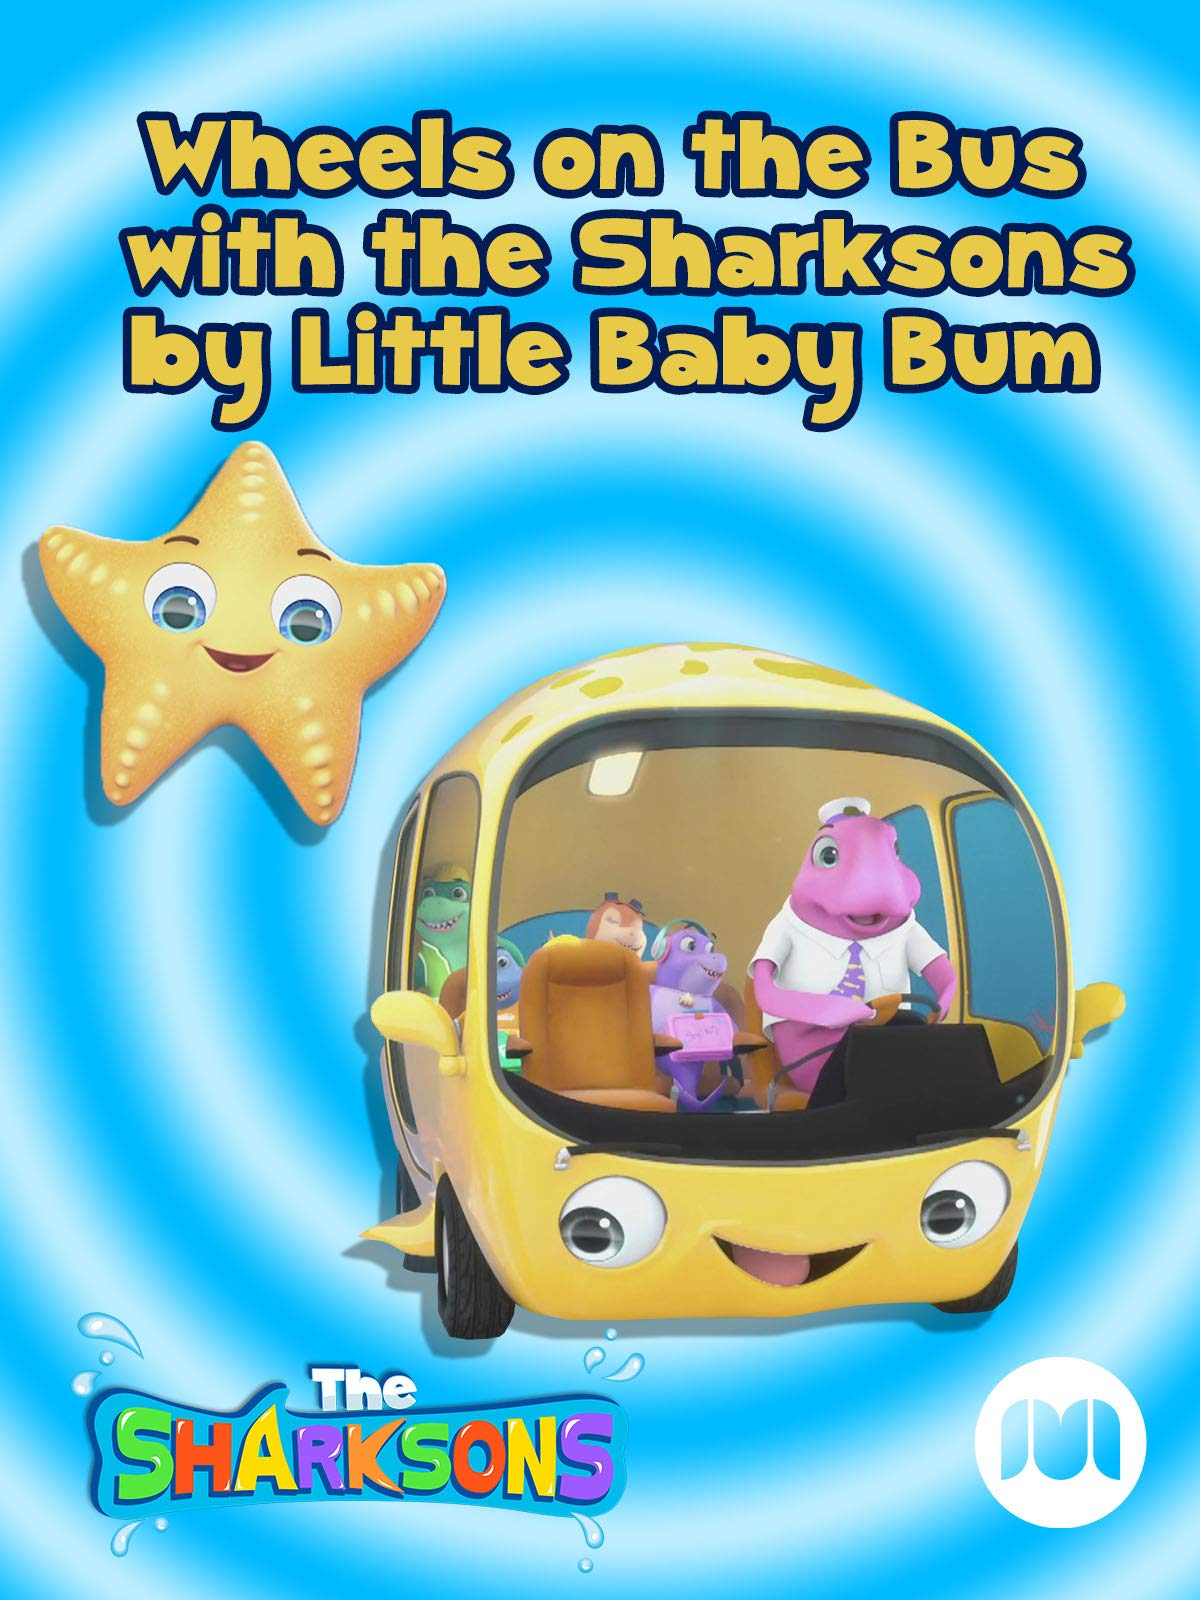 Wheels on the Bus with the Sharksons by Little Baby Bum